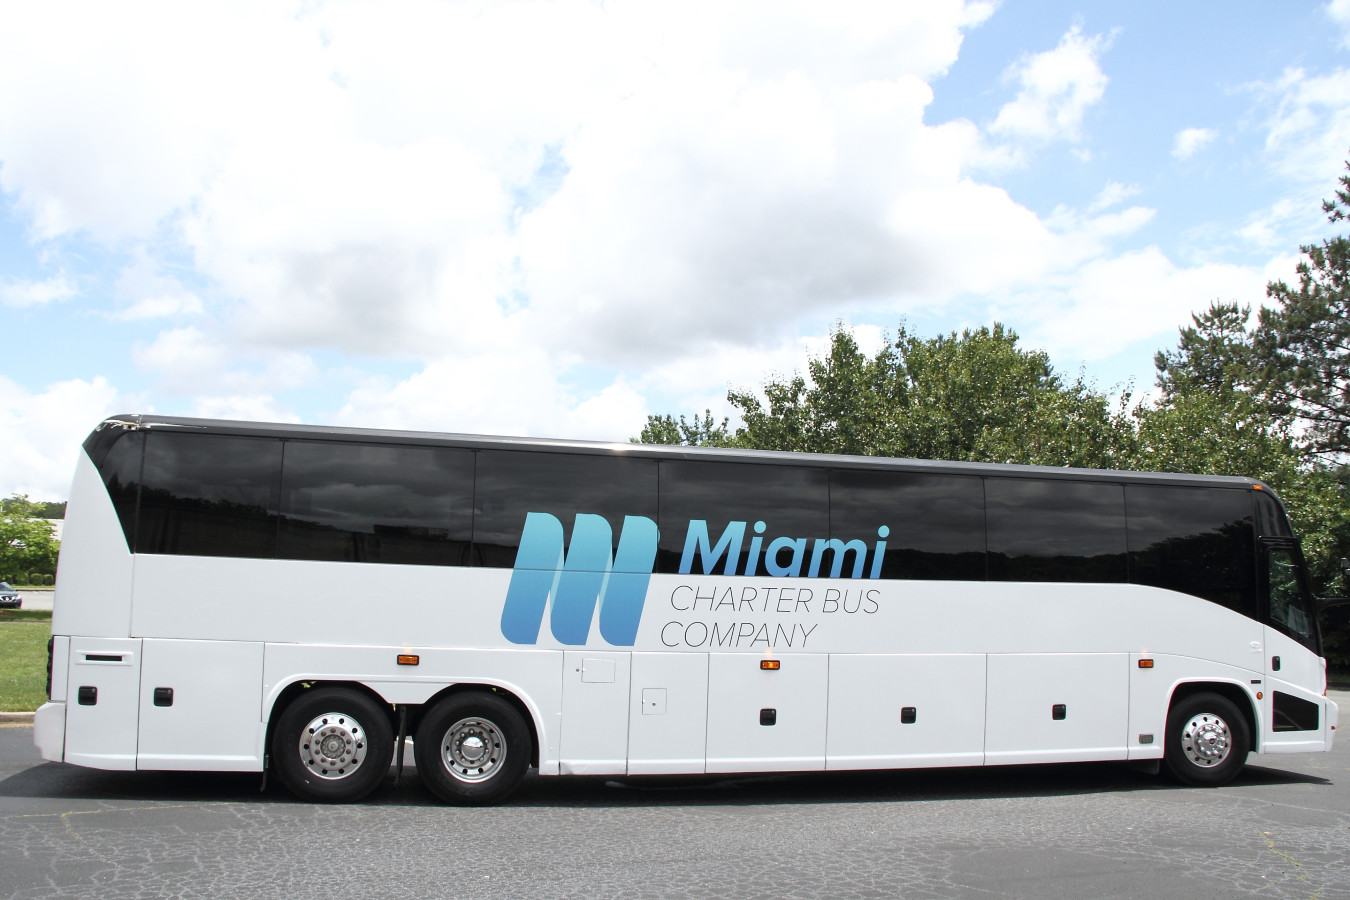 Miami Charter Bus Company bus in parking lot